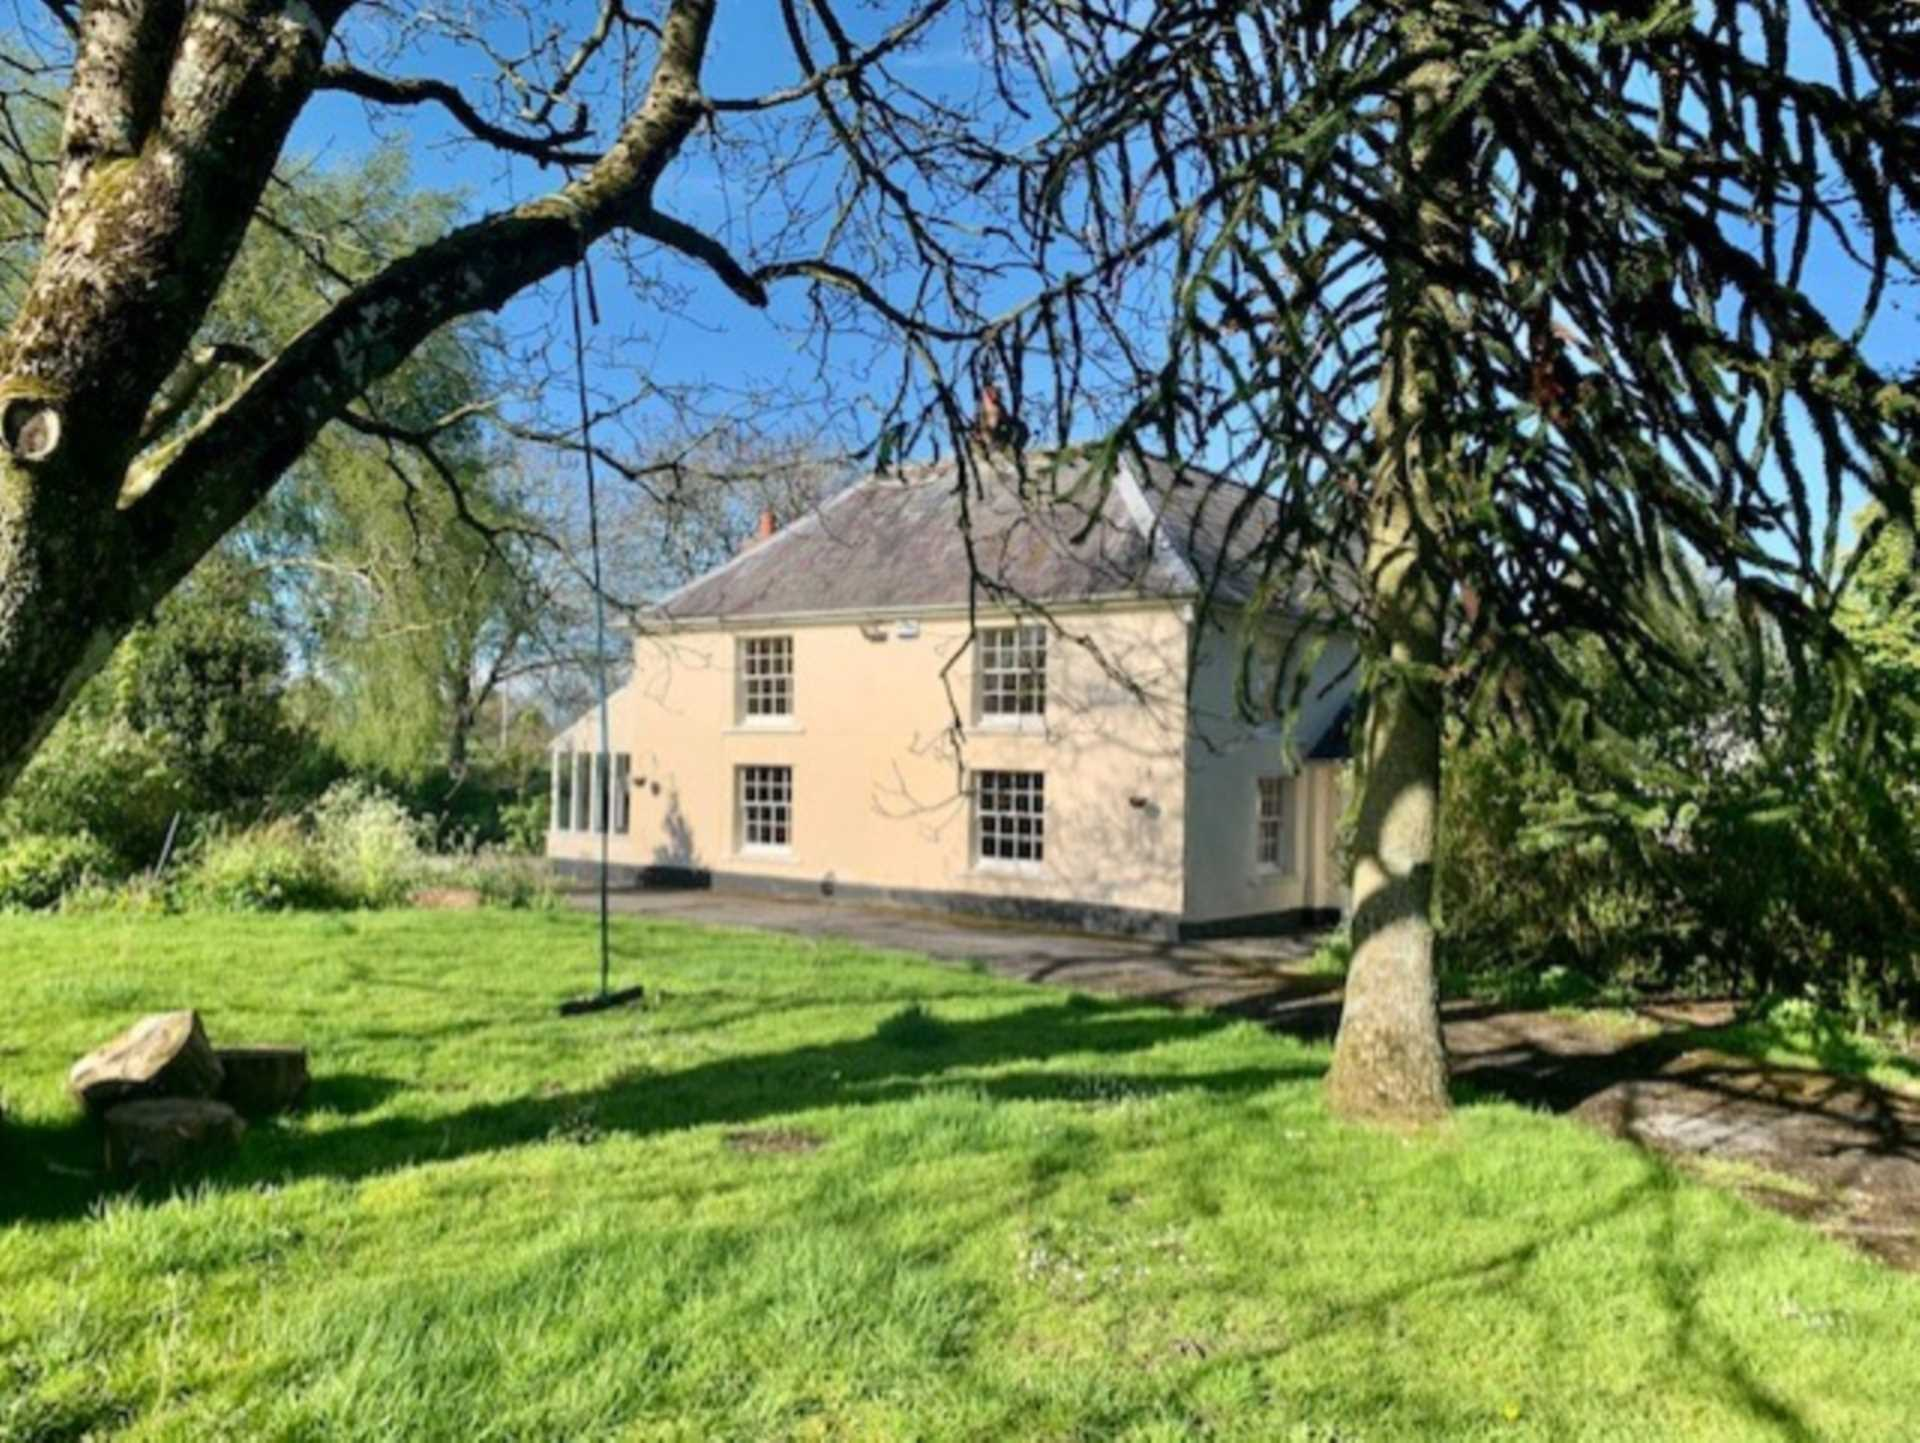 Swallows Property Letting - 4 Bedroom Detached, Kilmington Common, Warminster